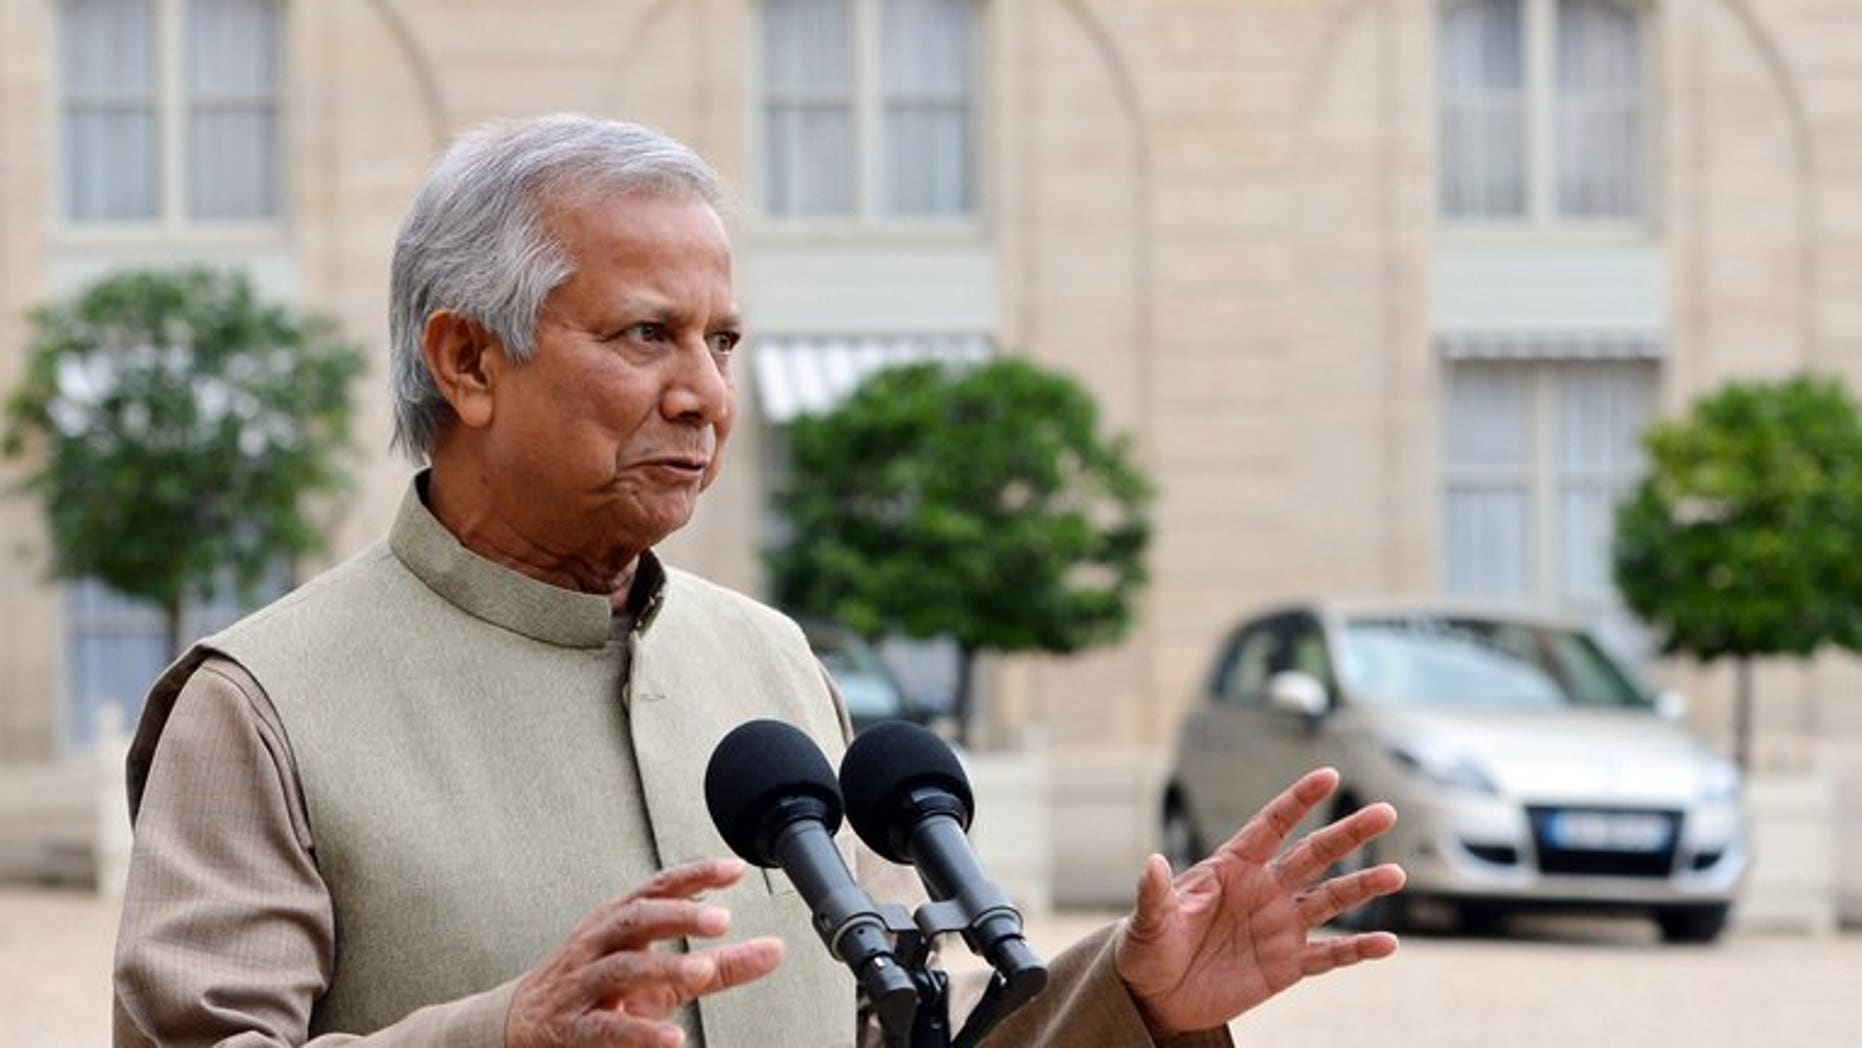 Grameen Bank founder Muhammad Yunus speaks to the press at the Elysee Palace in Paris, last October. Bangladesh's pioneering microlender faces an uncertain future after a commission proposed the government take over or break up the Nobel-award-winning bank, analysts said Tuesday.